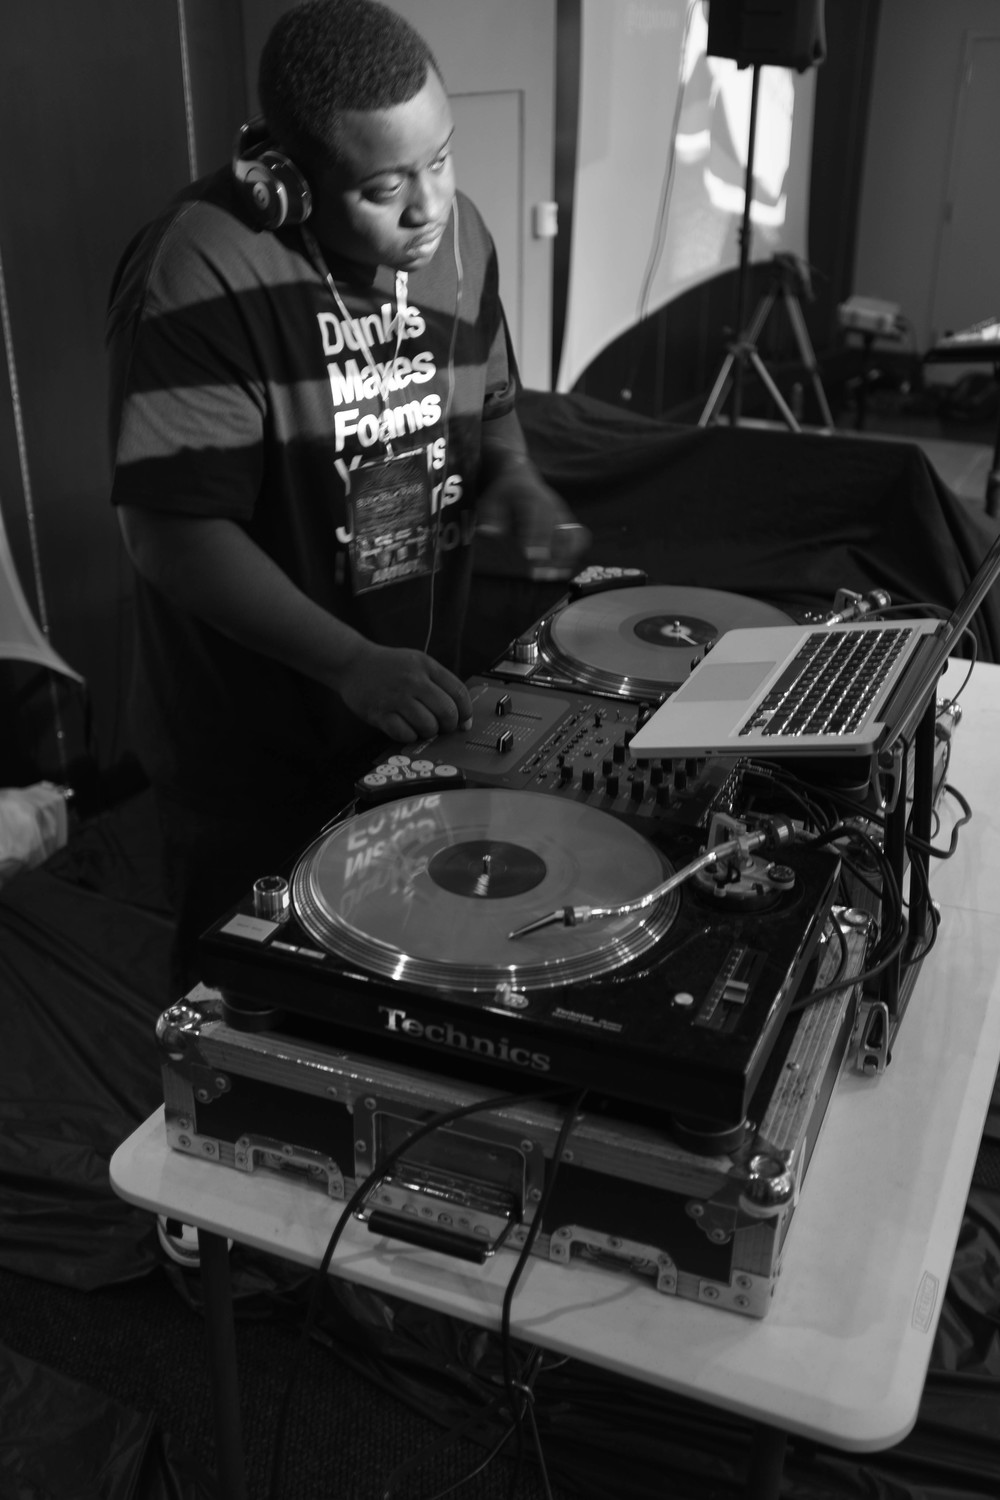 DJ Knect rockin on the turntables. He was playing heat all day!